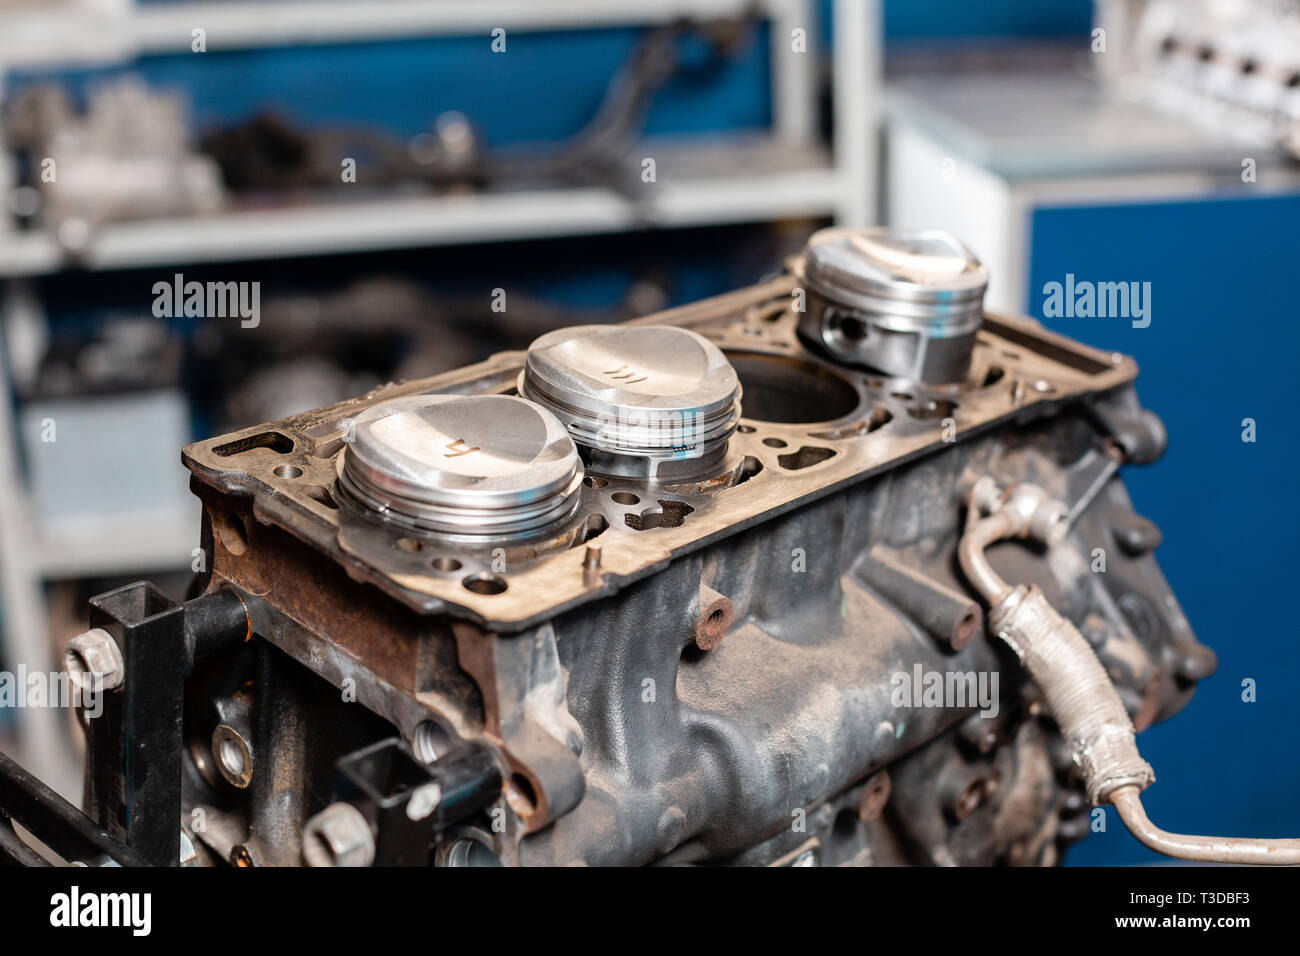 hight resolution of close up a new pistons for the engine overhaul engine on a repair stand with piston and connecting rod of automotive technology interior of a car